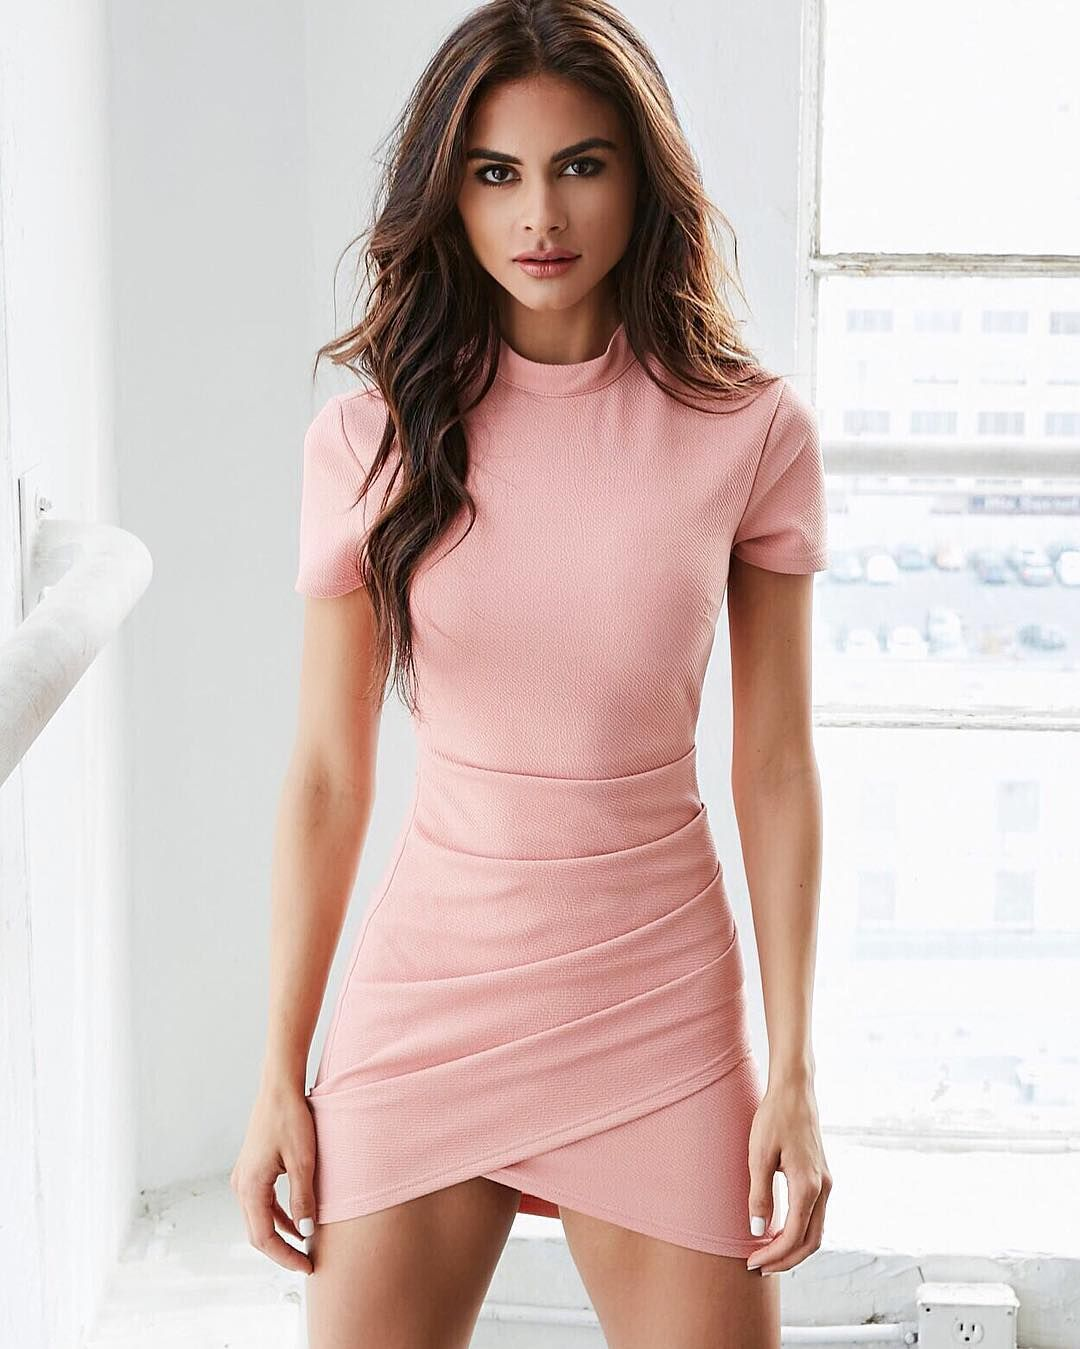 The \'Fiona\' mini $64.95 - this dress is exclusive to ...